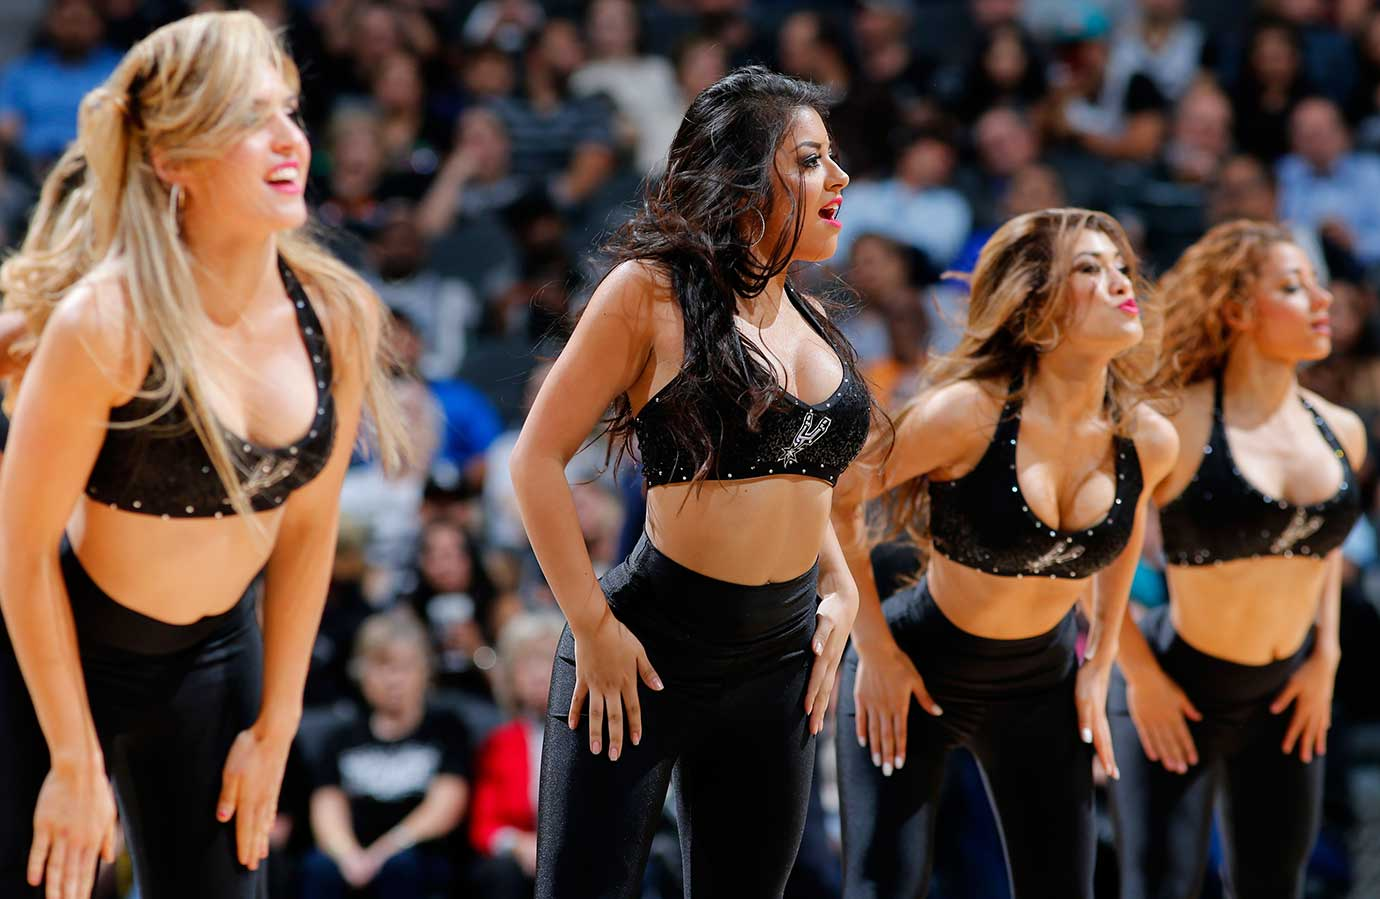 The San Antonio Spurs dance team is seen during the game against the Detroit Pistons.